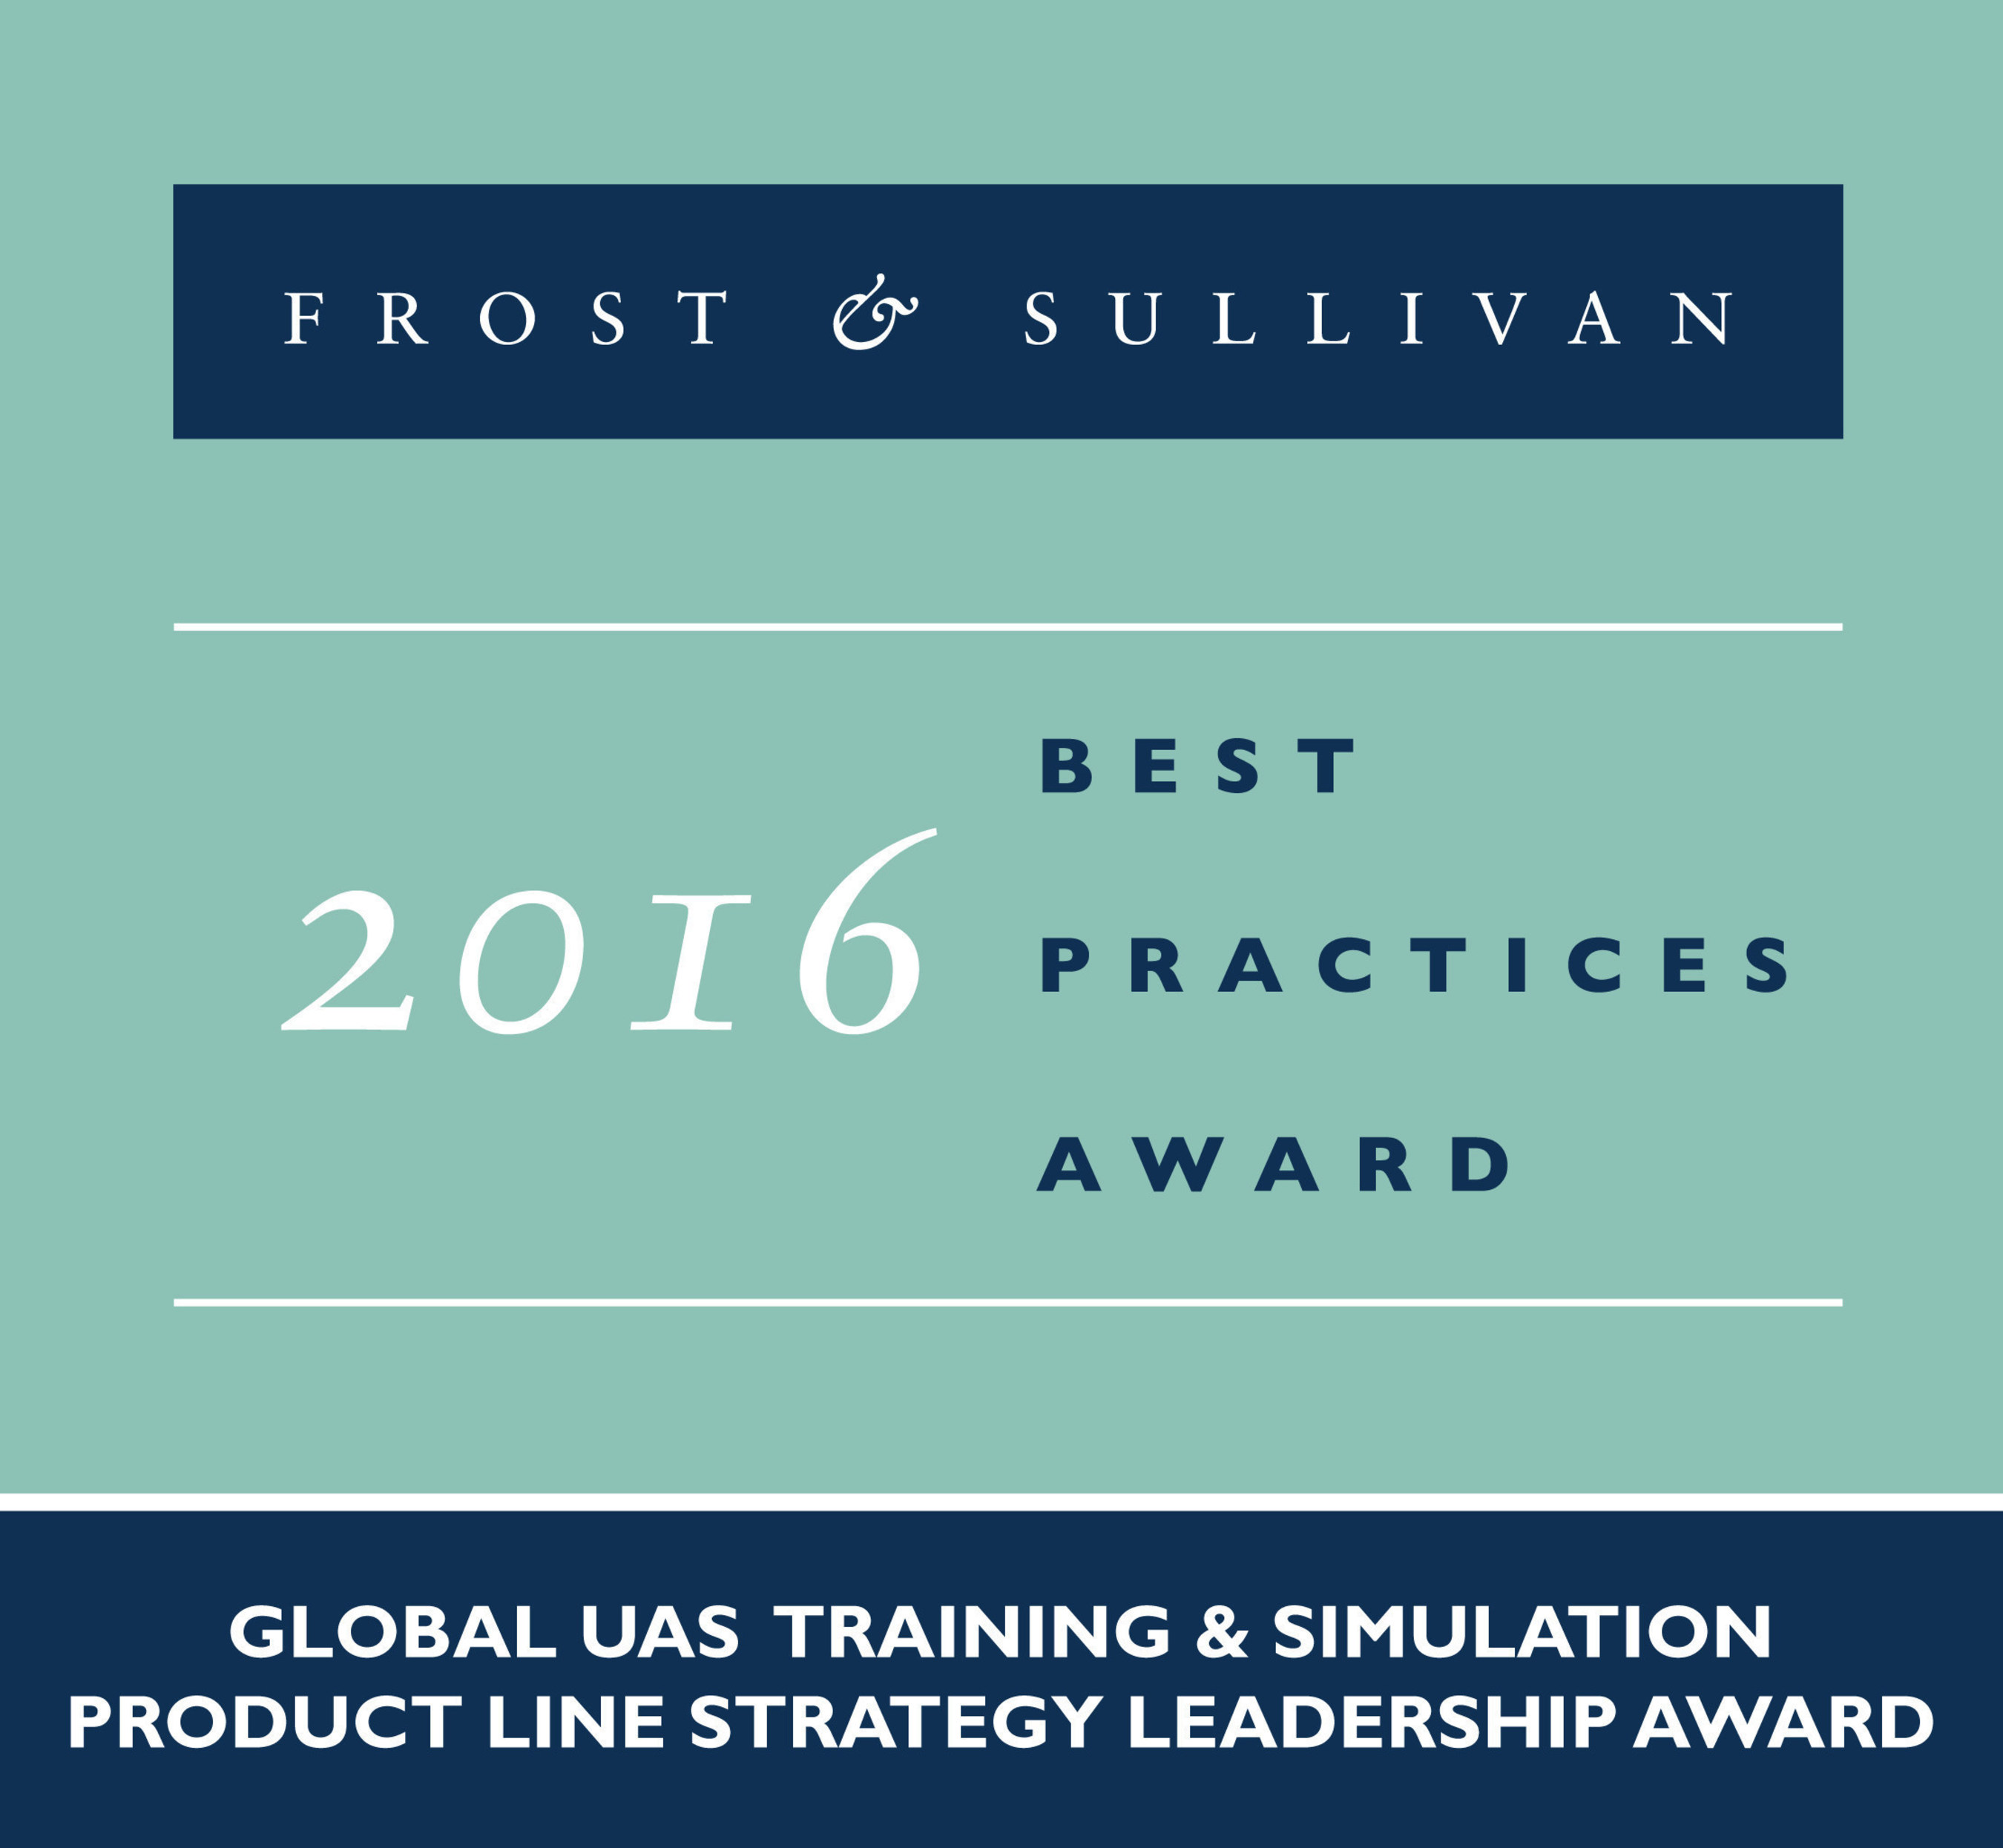 Frost & Sullivan recognizes Simlat Ltd. as the recipient of the 2016 Global Product Line Strategy Leadership Award.